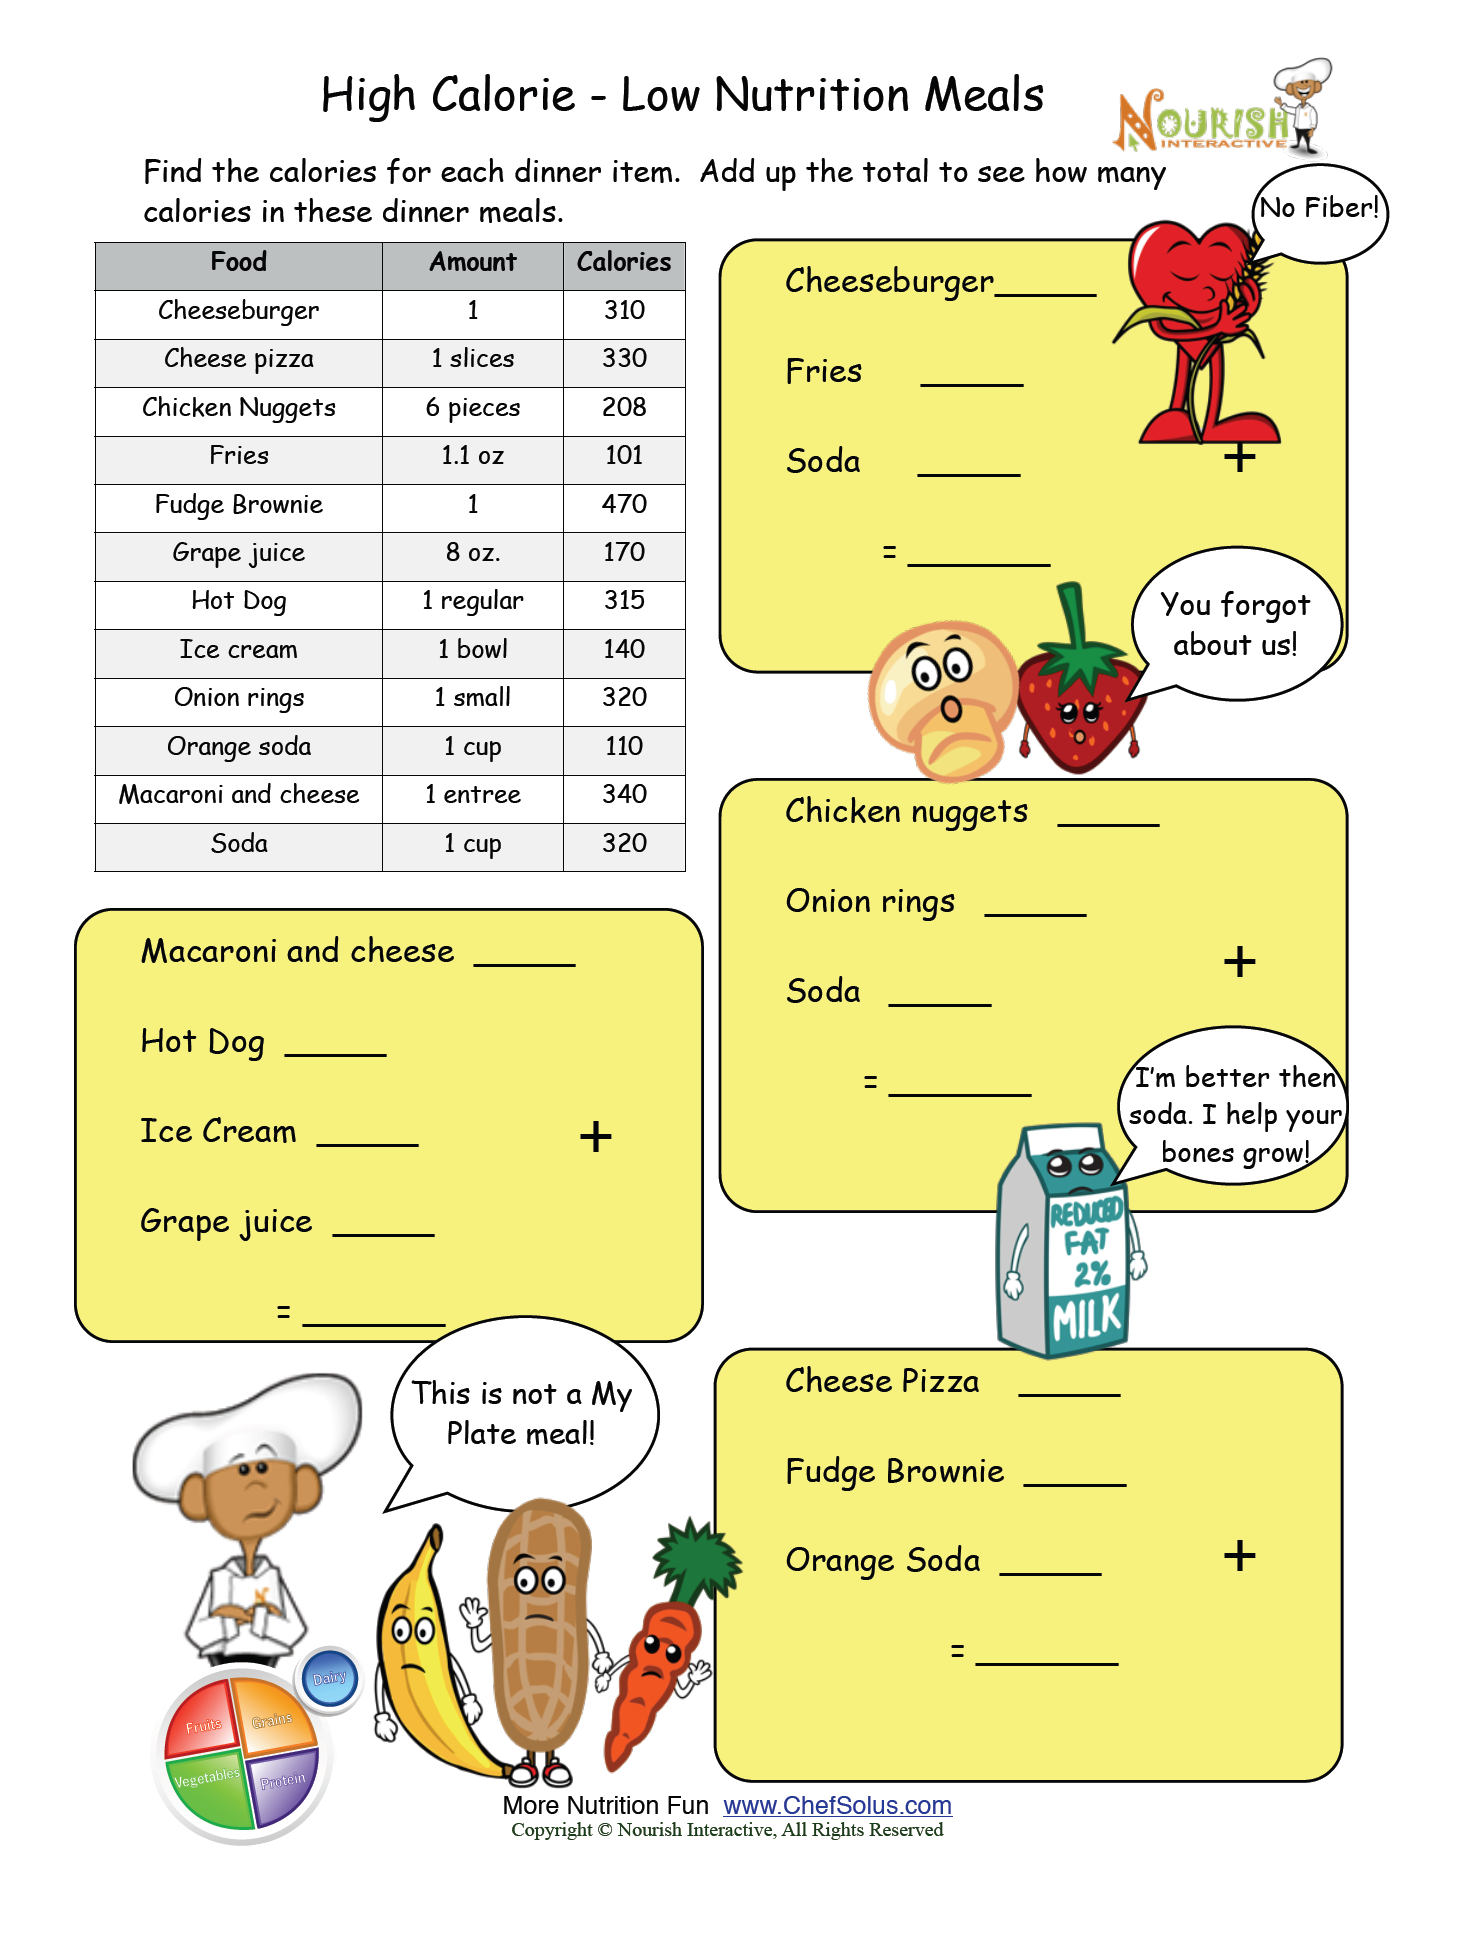 High Calorie Low Nutrition Meal Math Worksheet Please Make Sure To Print The Answer Key As